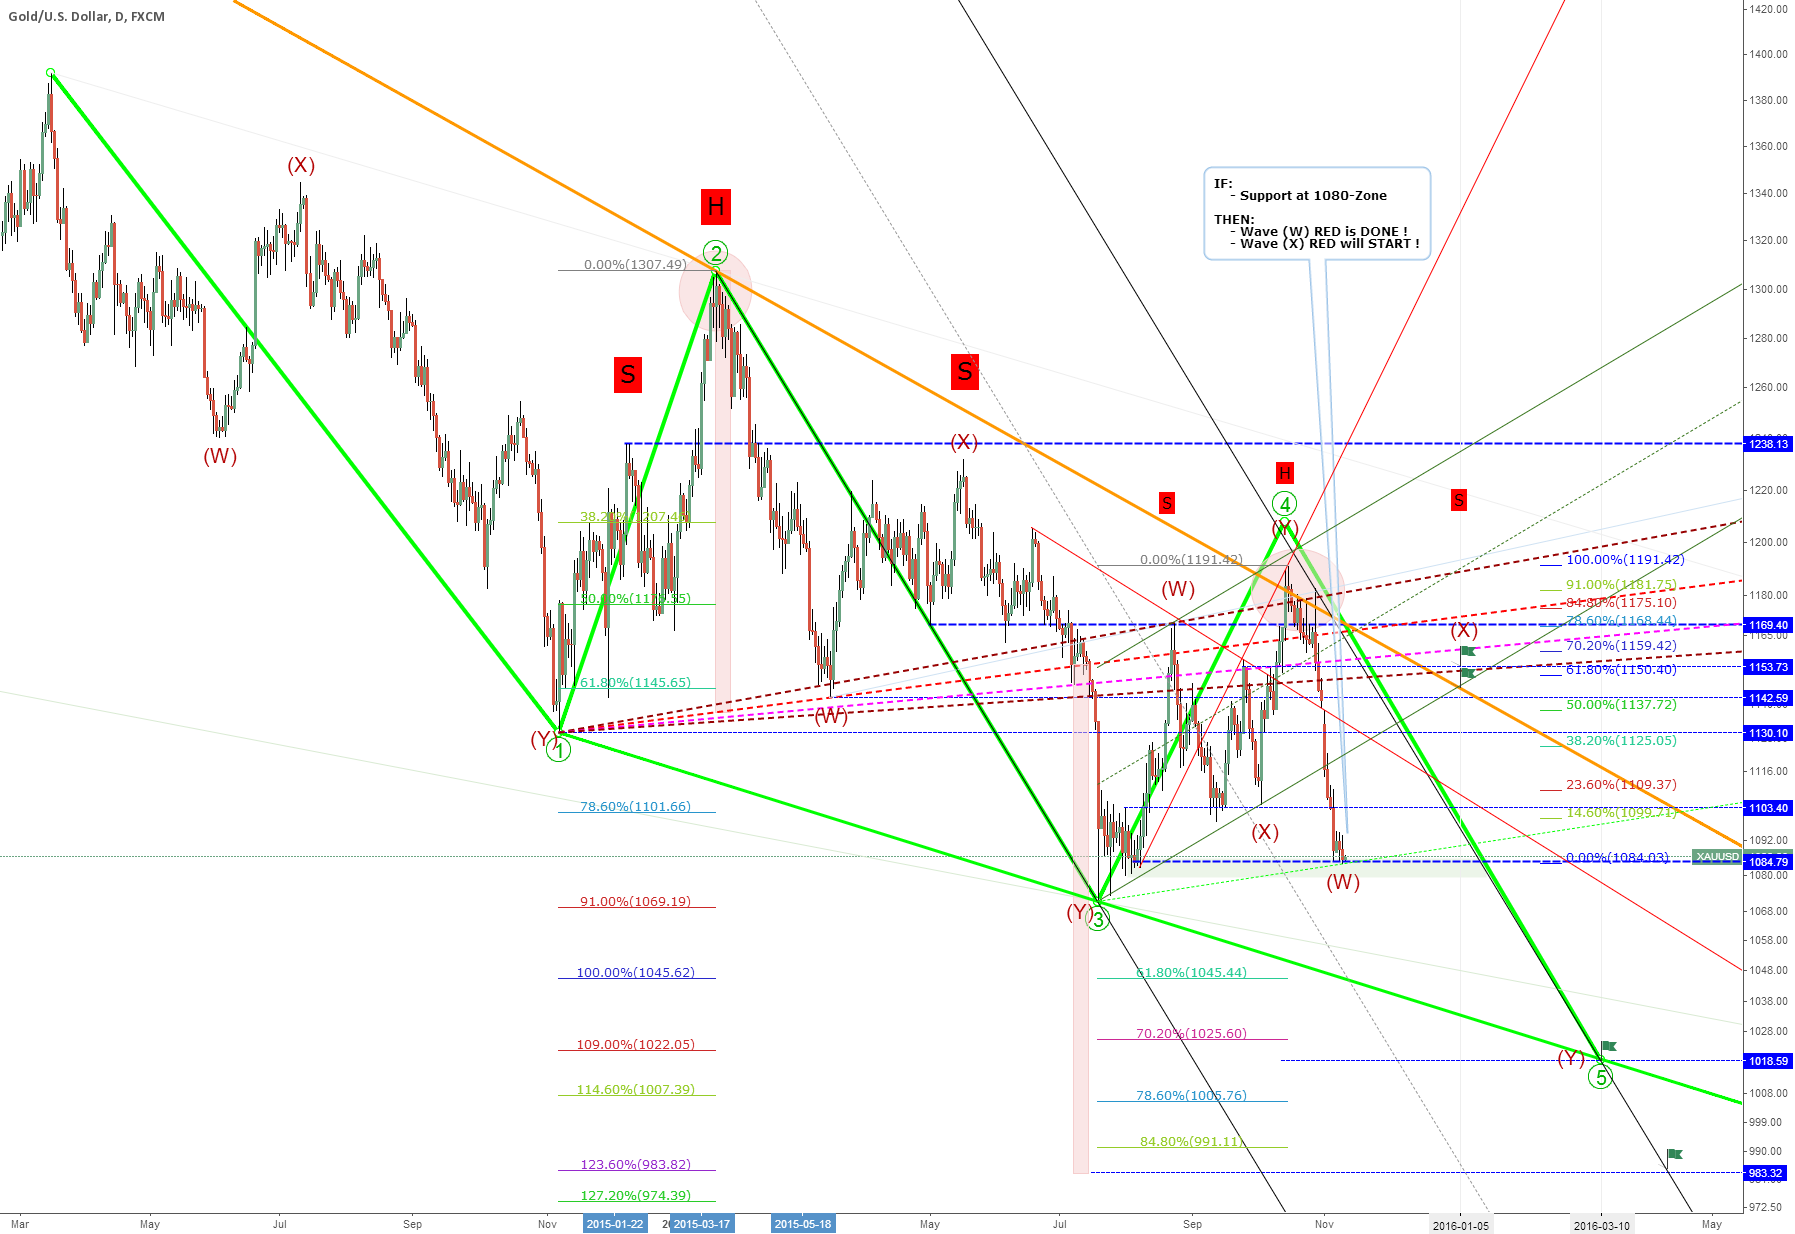 EW-Target: 1153 = wave (X) of ((5)) of EDT, IF support-zone 1080